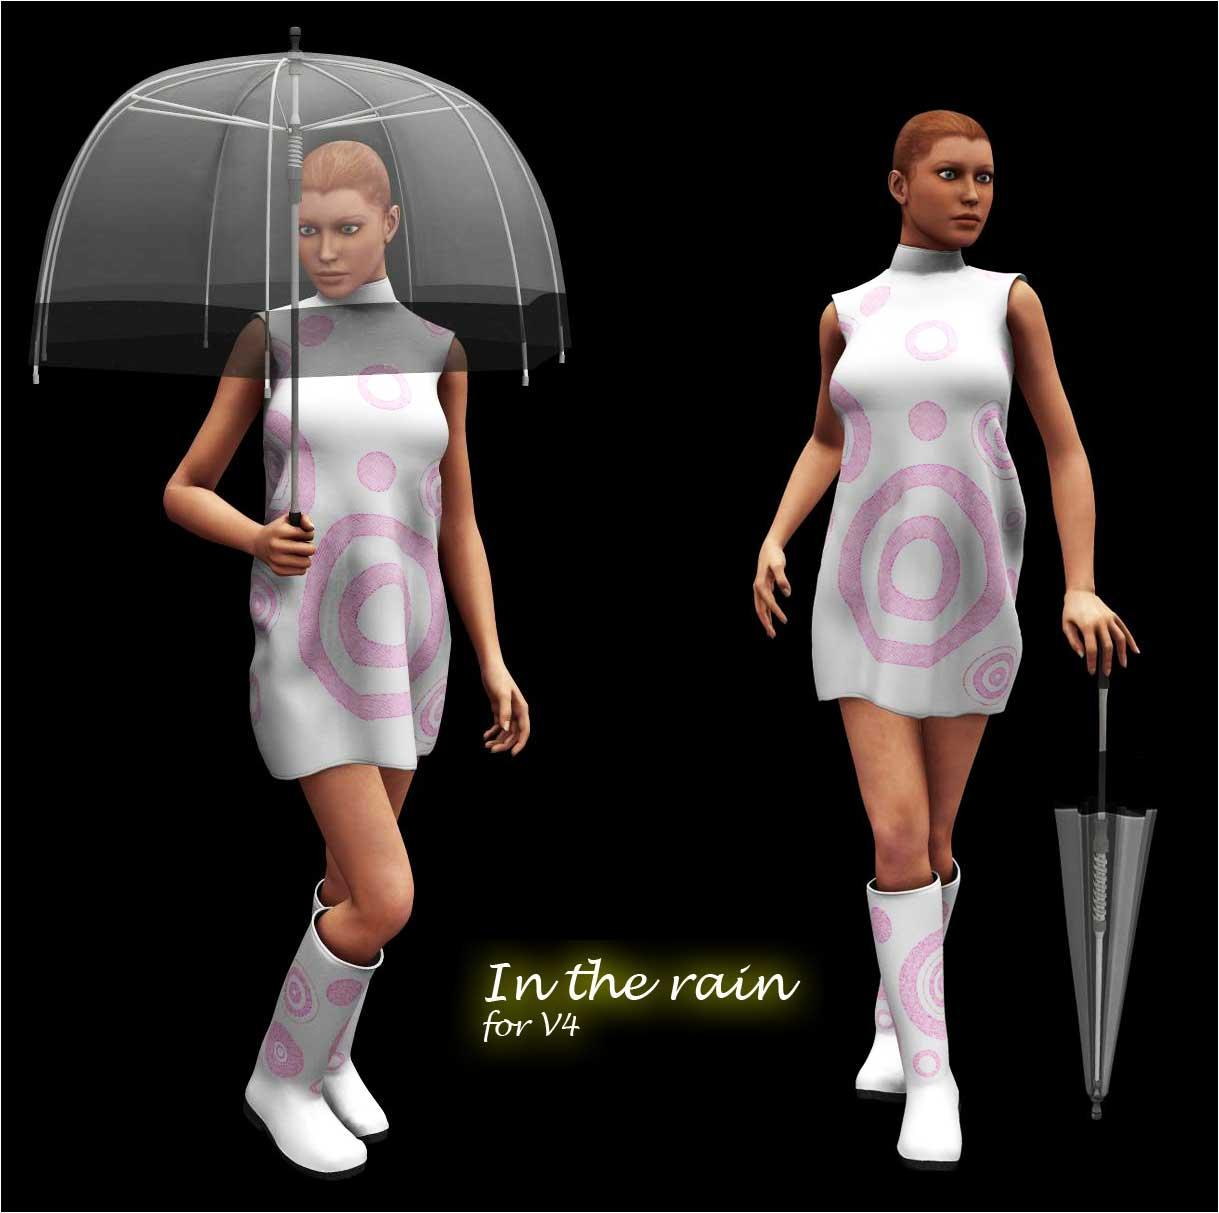 In the Rain for V4 by adh3d